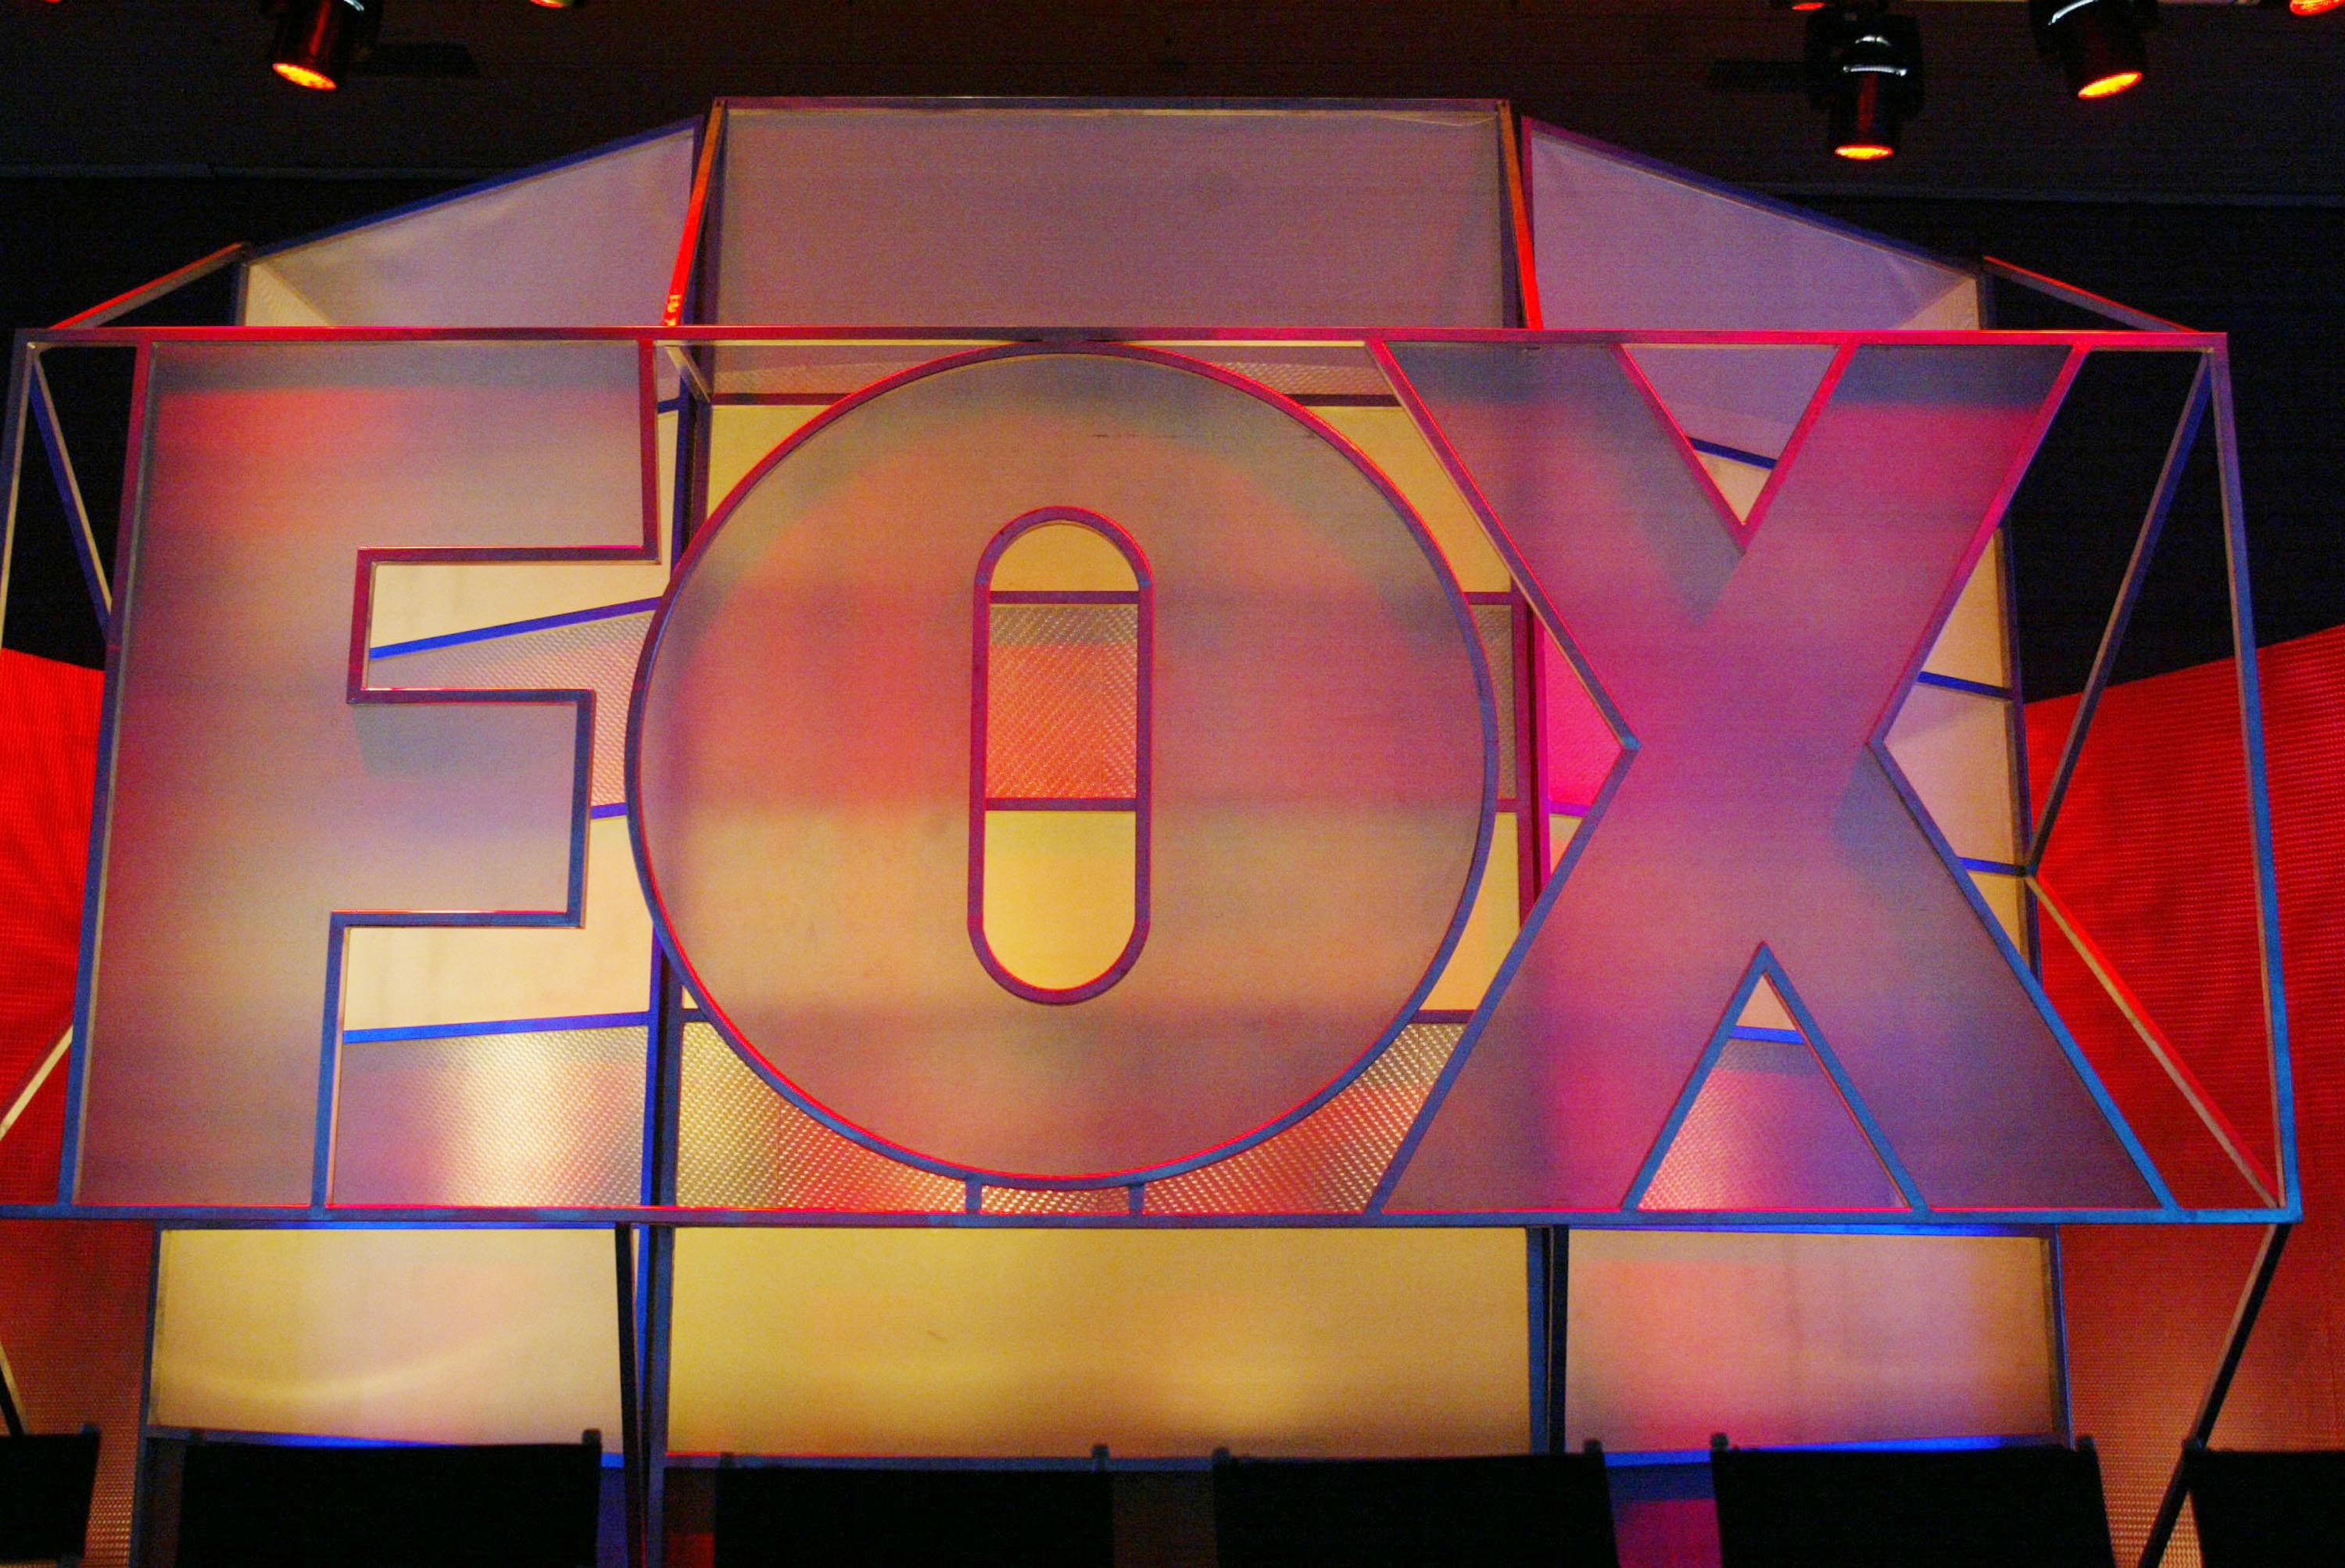 The Fox Network logo is displayed during the 2005 Television Critics Winter Press Tour at the Hilton Universal Hotel on January 17, 2005 in Universal City, California (Getty)